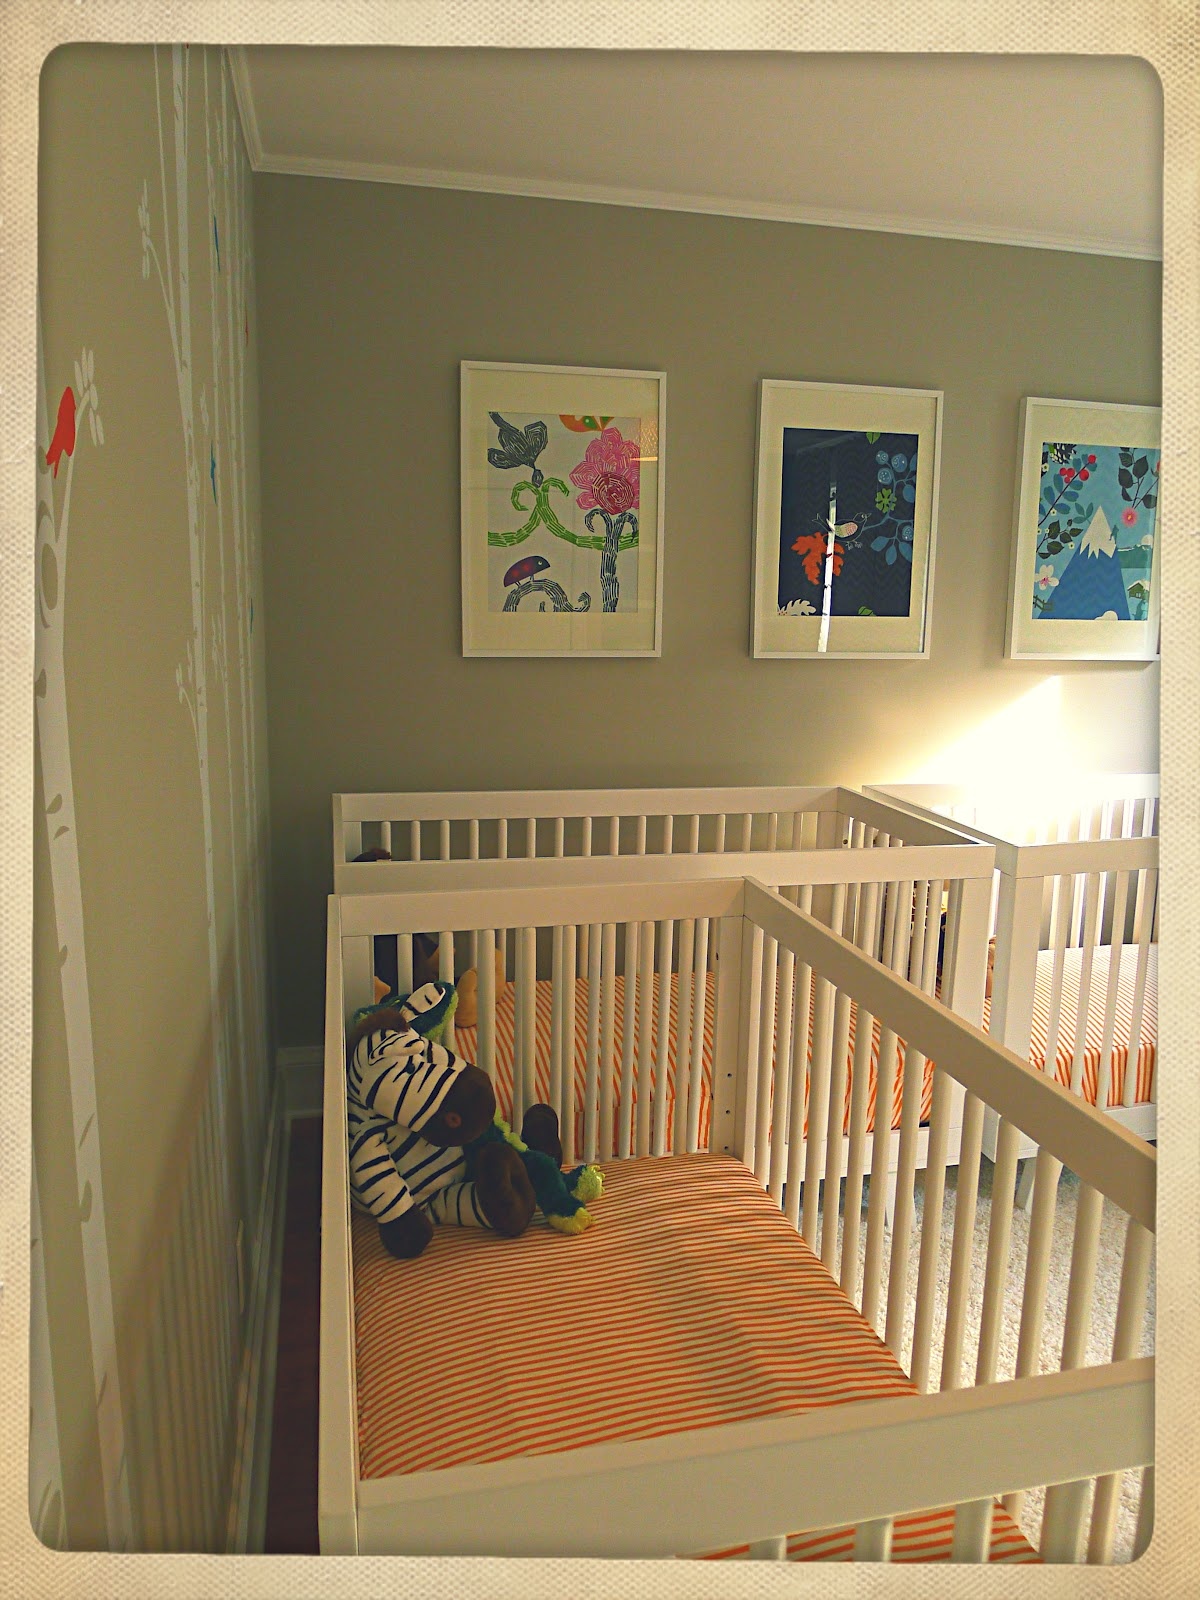 Crib for triplet babies - The Triplets New Digs